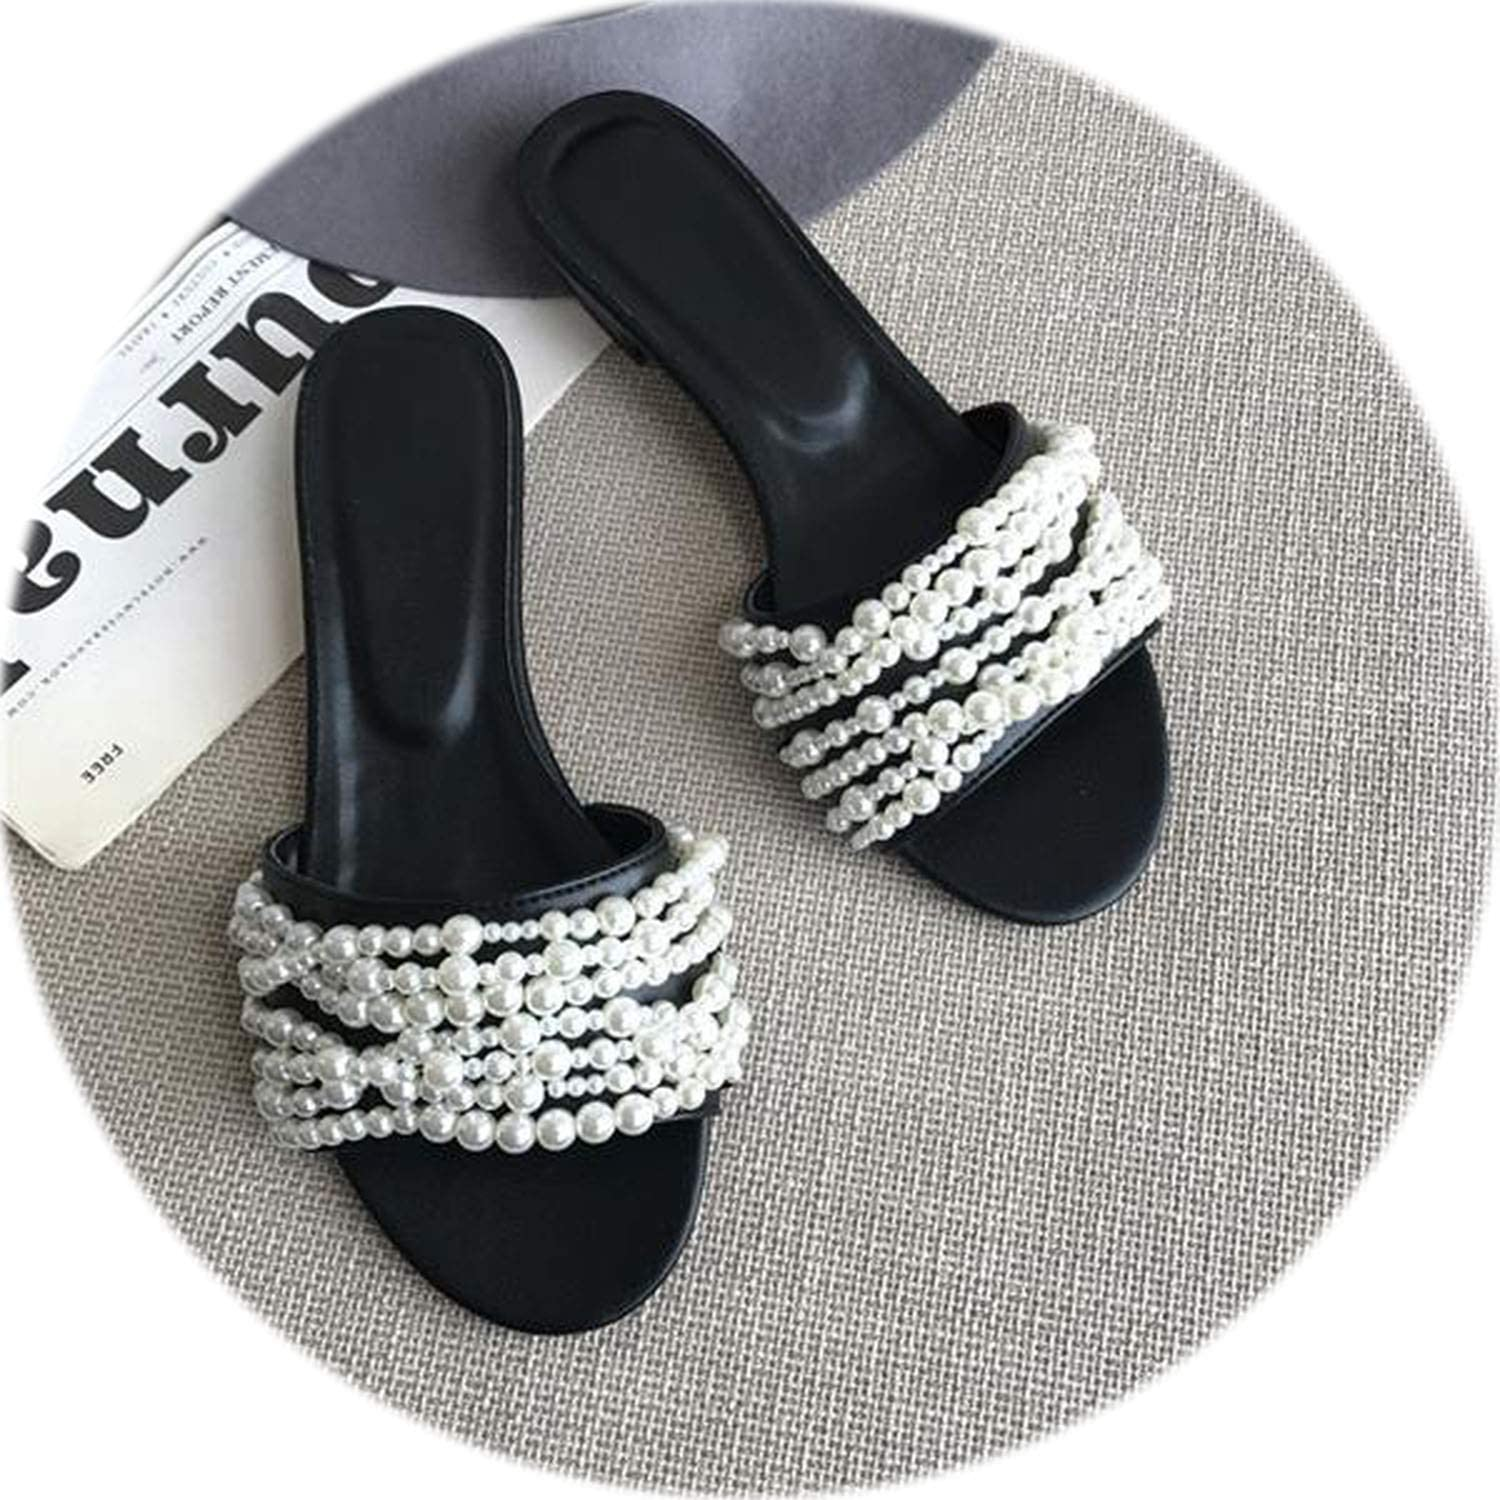 New Spring Summer shoes Woman Casual Slippers Designer Leather Pearls Open Toe Woman Cozy Flats Outside Slides Woman shoes